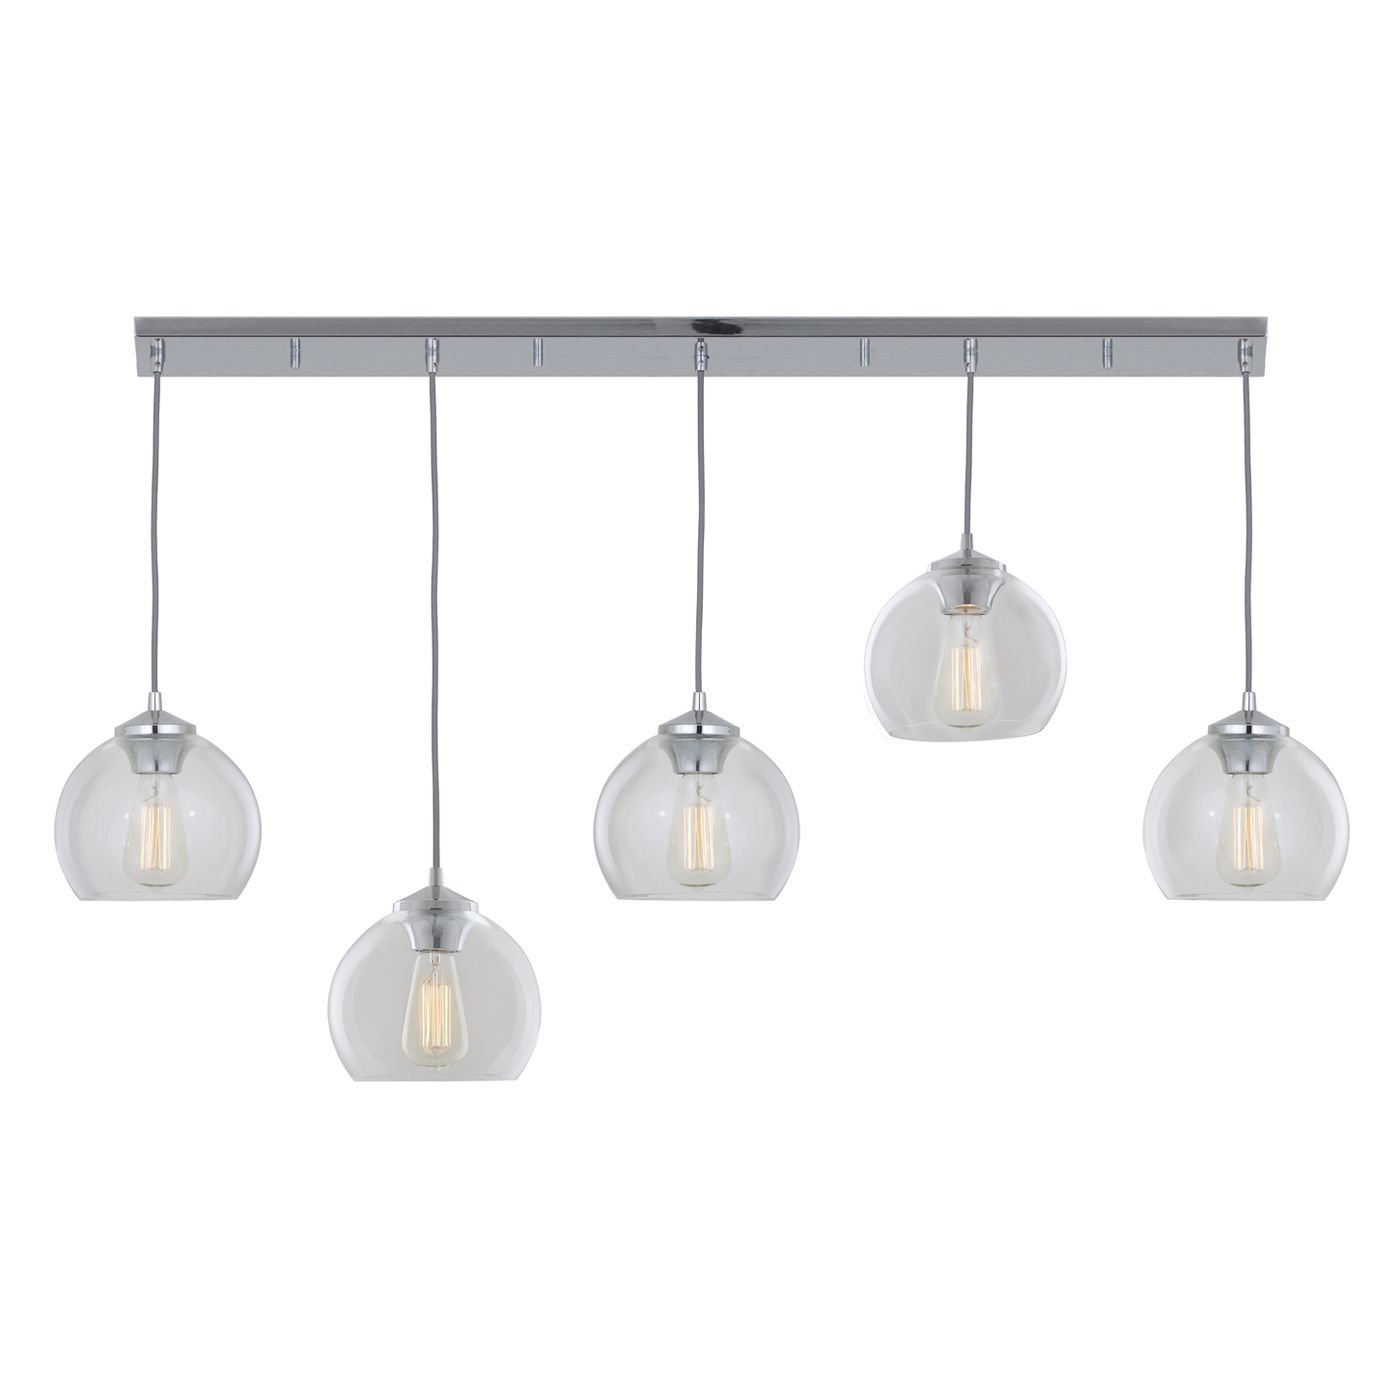 Gallery Website Shop DVI Lighting DVP Oberon Multi Light Pendant at Lowe us Canada Find our selection of